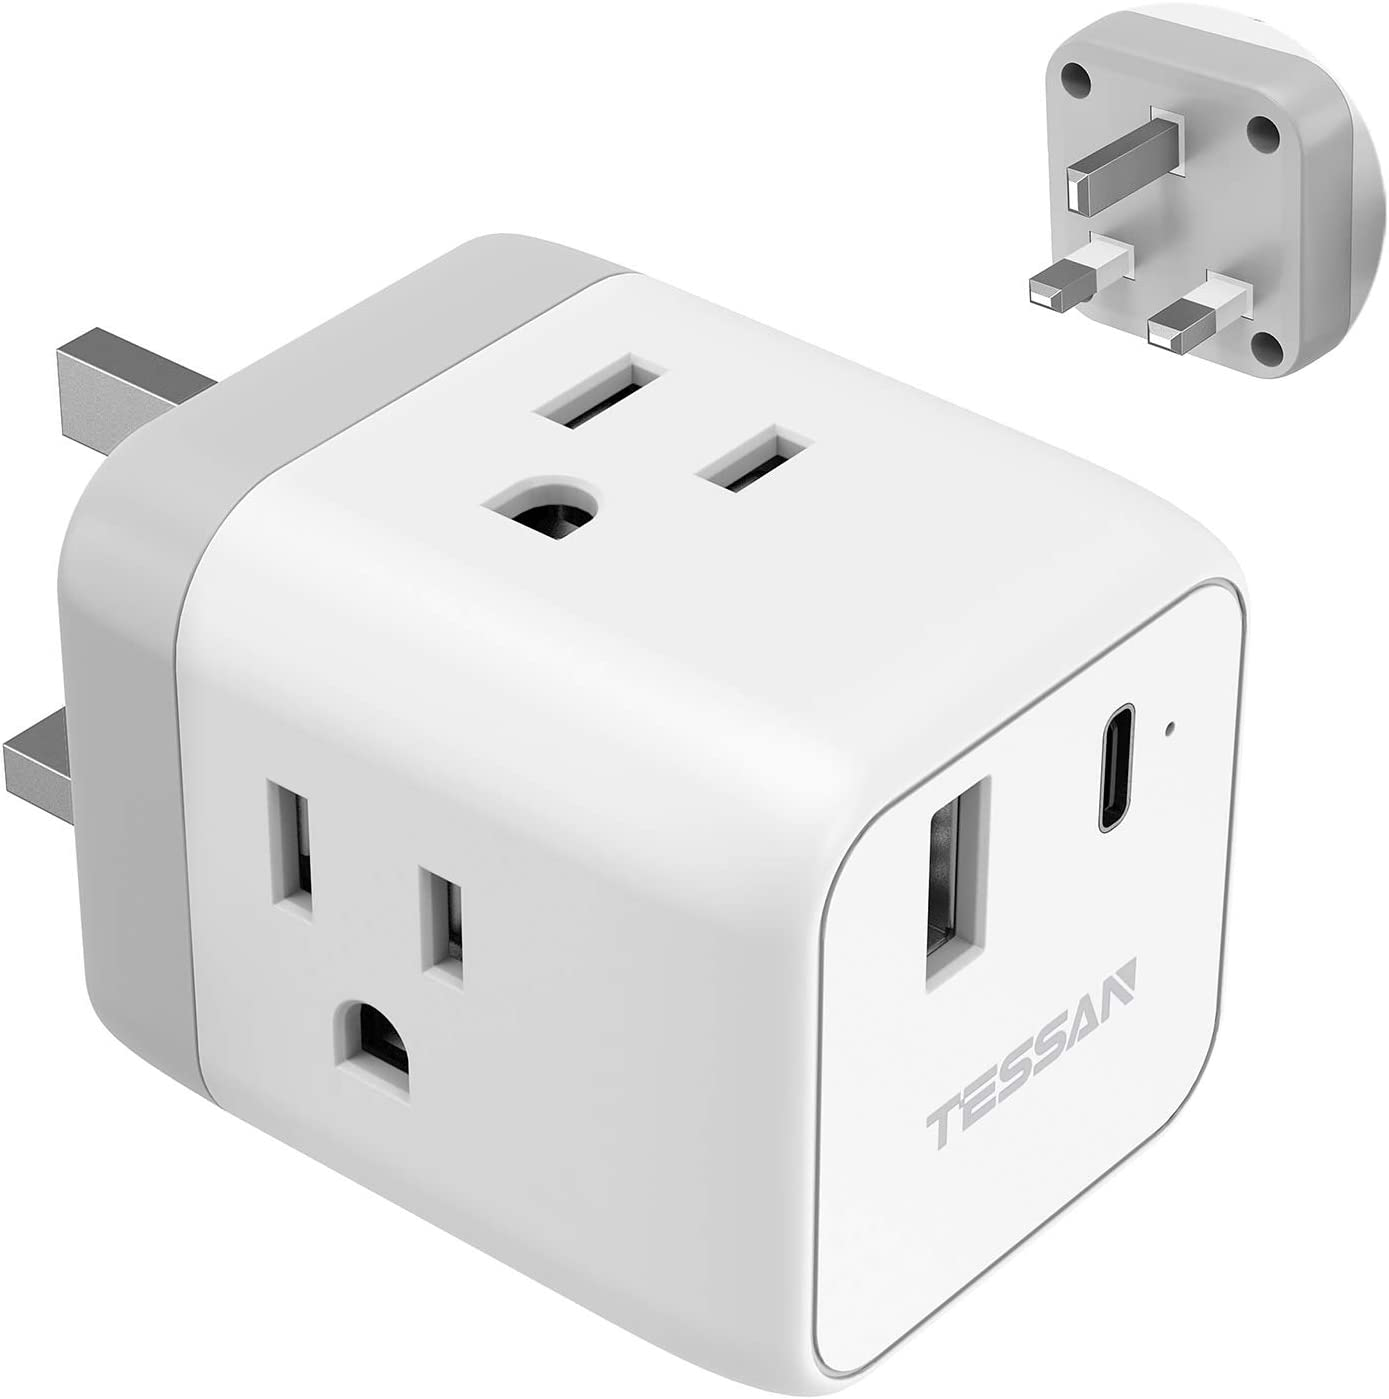 UK Ireland Travel Adapter with USB C PD, TESSAN UK Power Adapter with 3 American Outlets and USB-A USB-C PD Quick Charging Ports, USA to UK Hong Kong British England Scotland Plug Adaptor, Type G